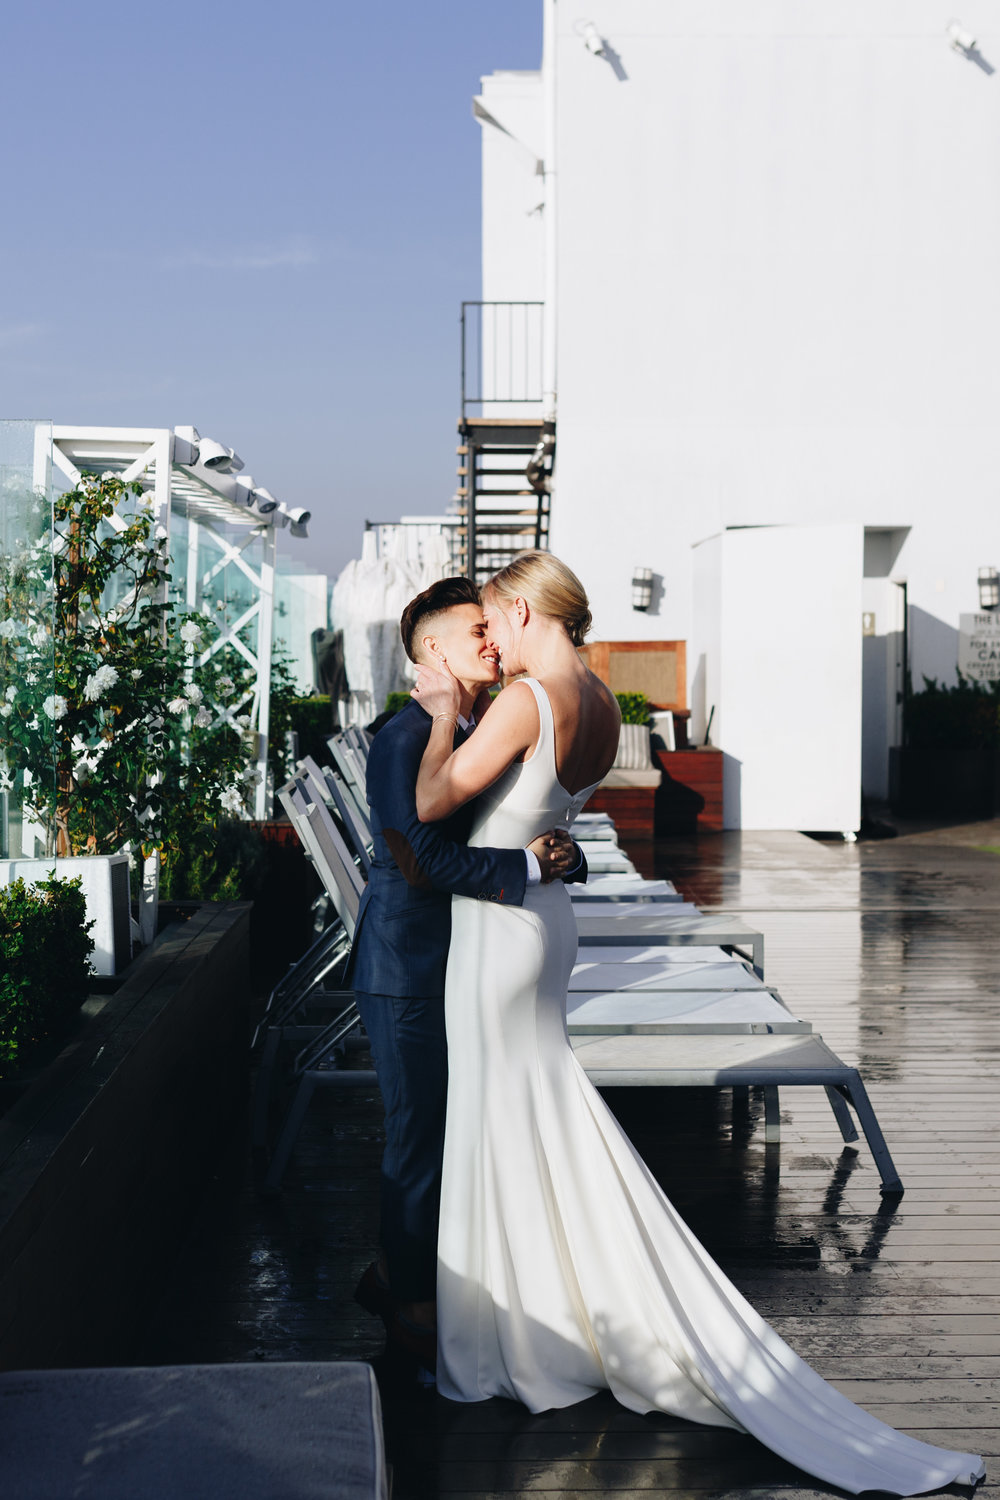 Tracy and Lindsey's Elegant and Romantic Brunch Wedding in Silverlake I Los Angeles Weddings I ©NYLONSADDLE Photography